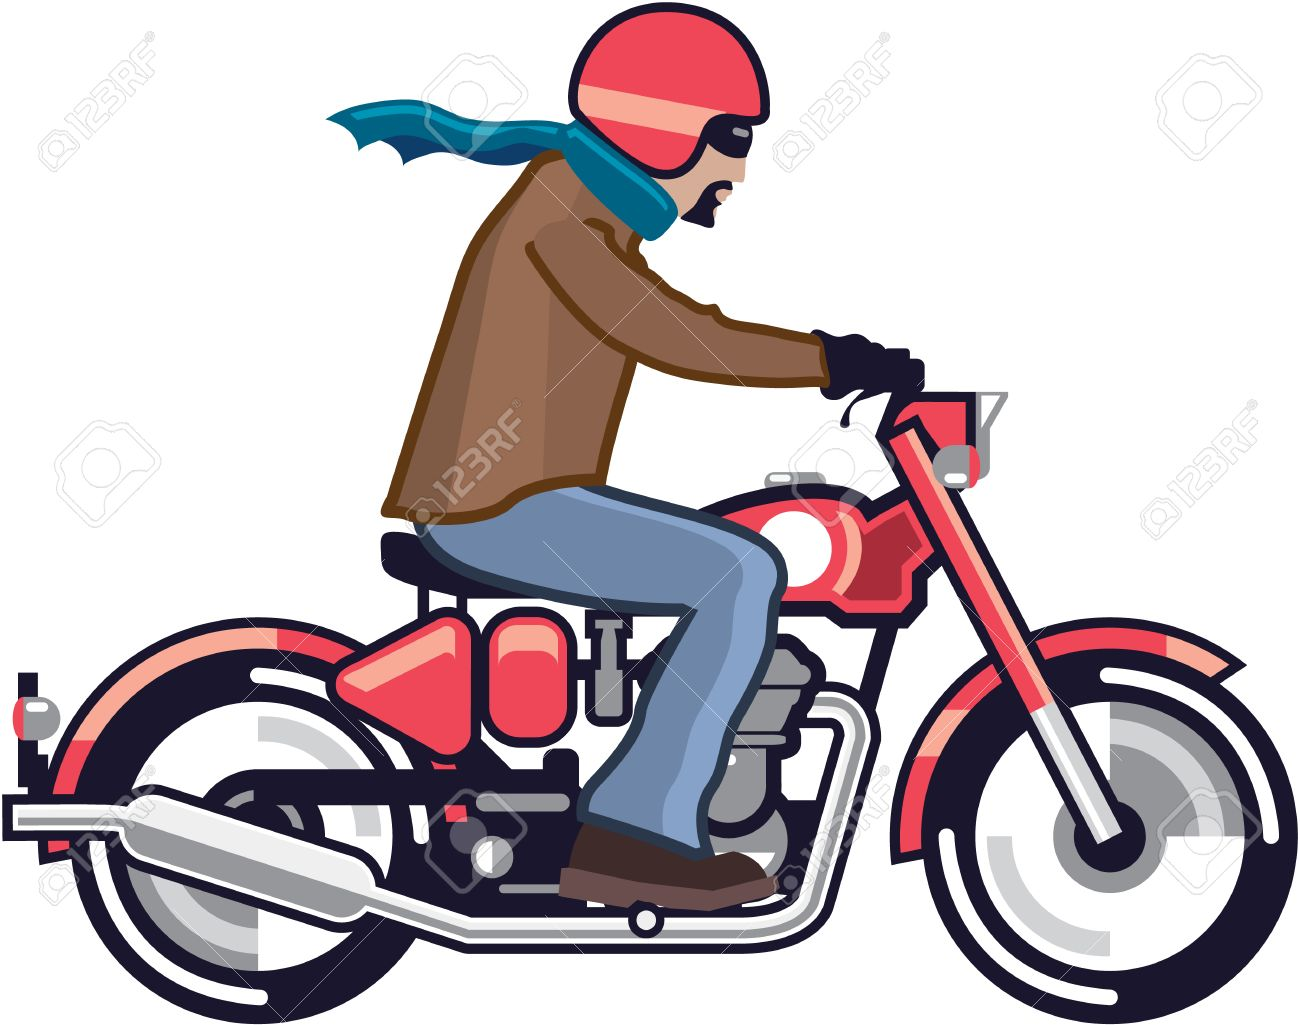 dude on the vintage motorcycle vector illustration clip art royalty rh 123rf com free motorcycle clipart images motorcycle clip art free printable